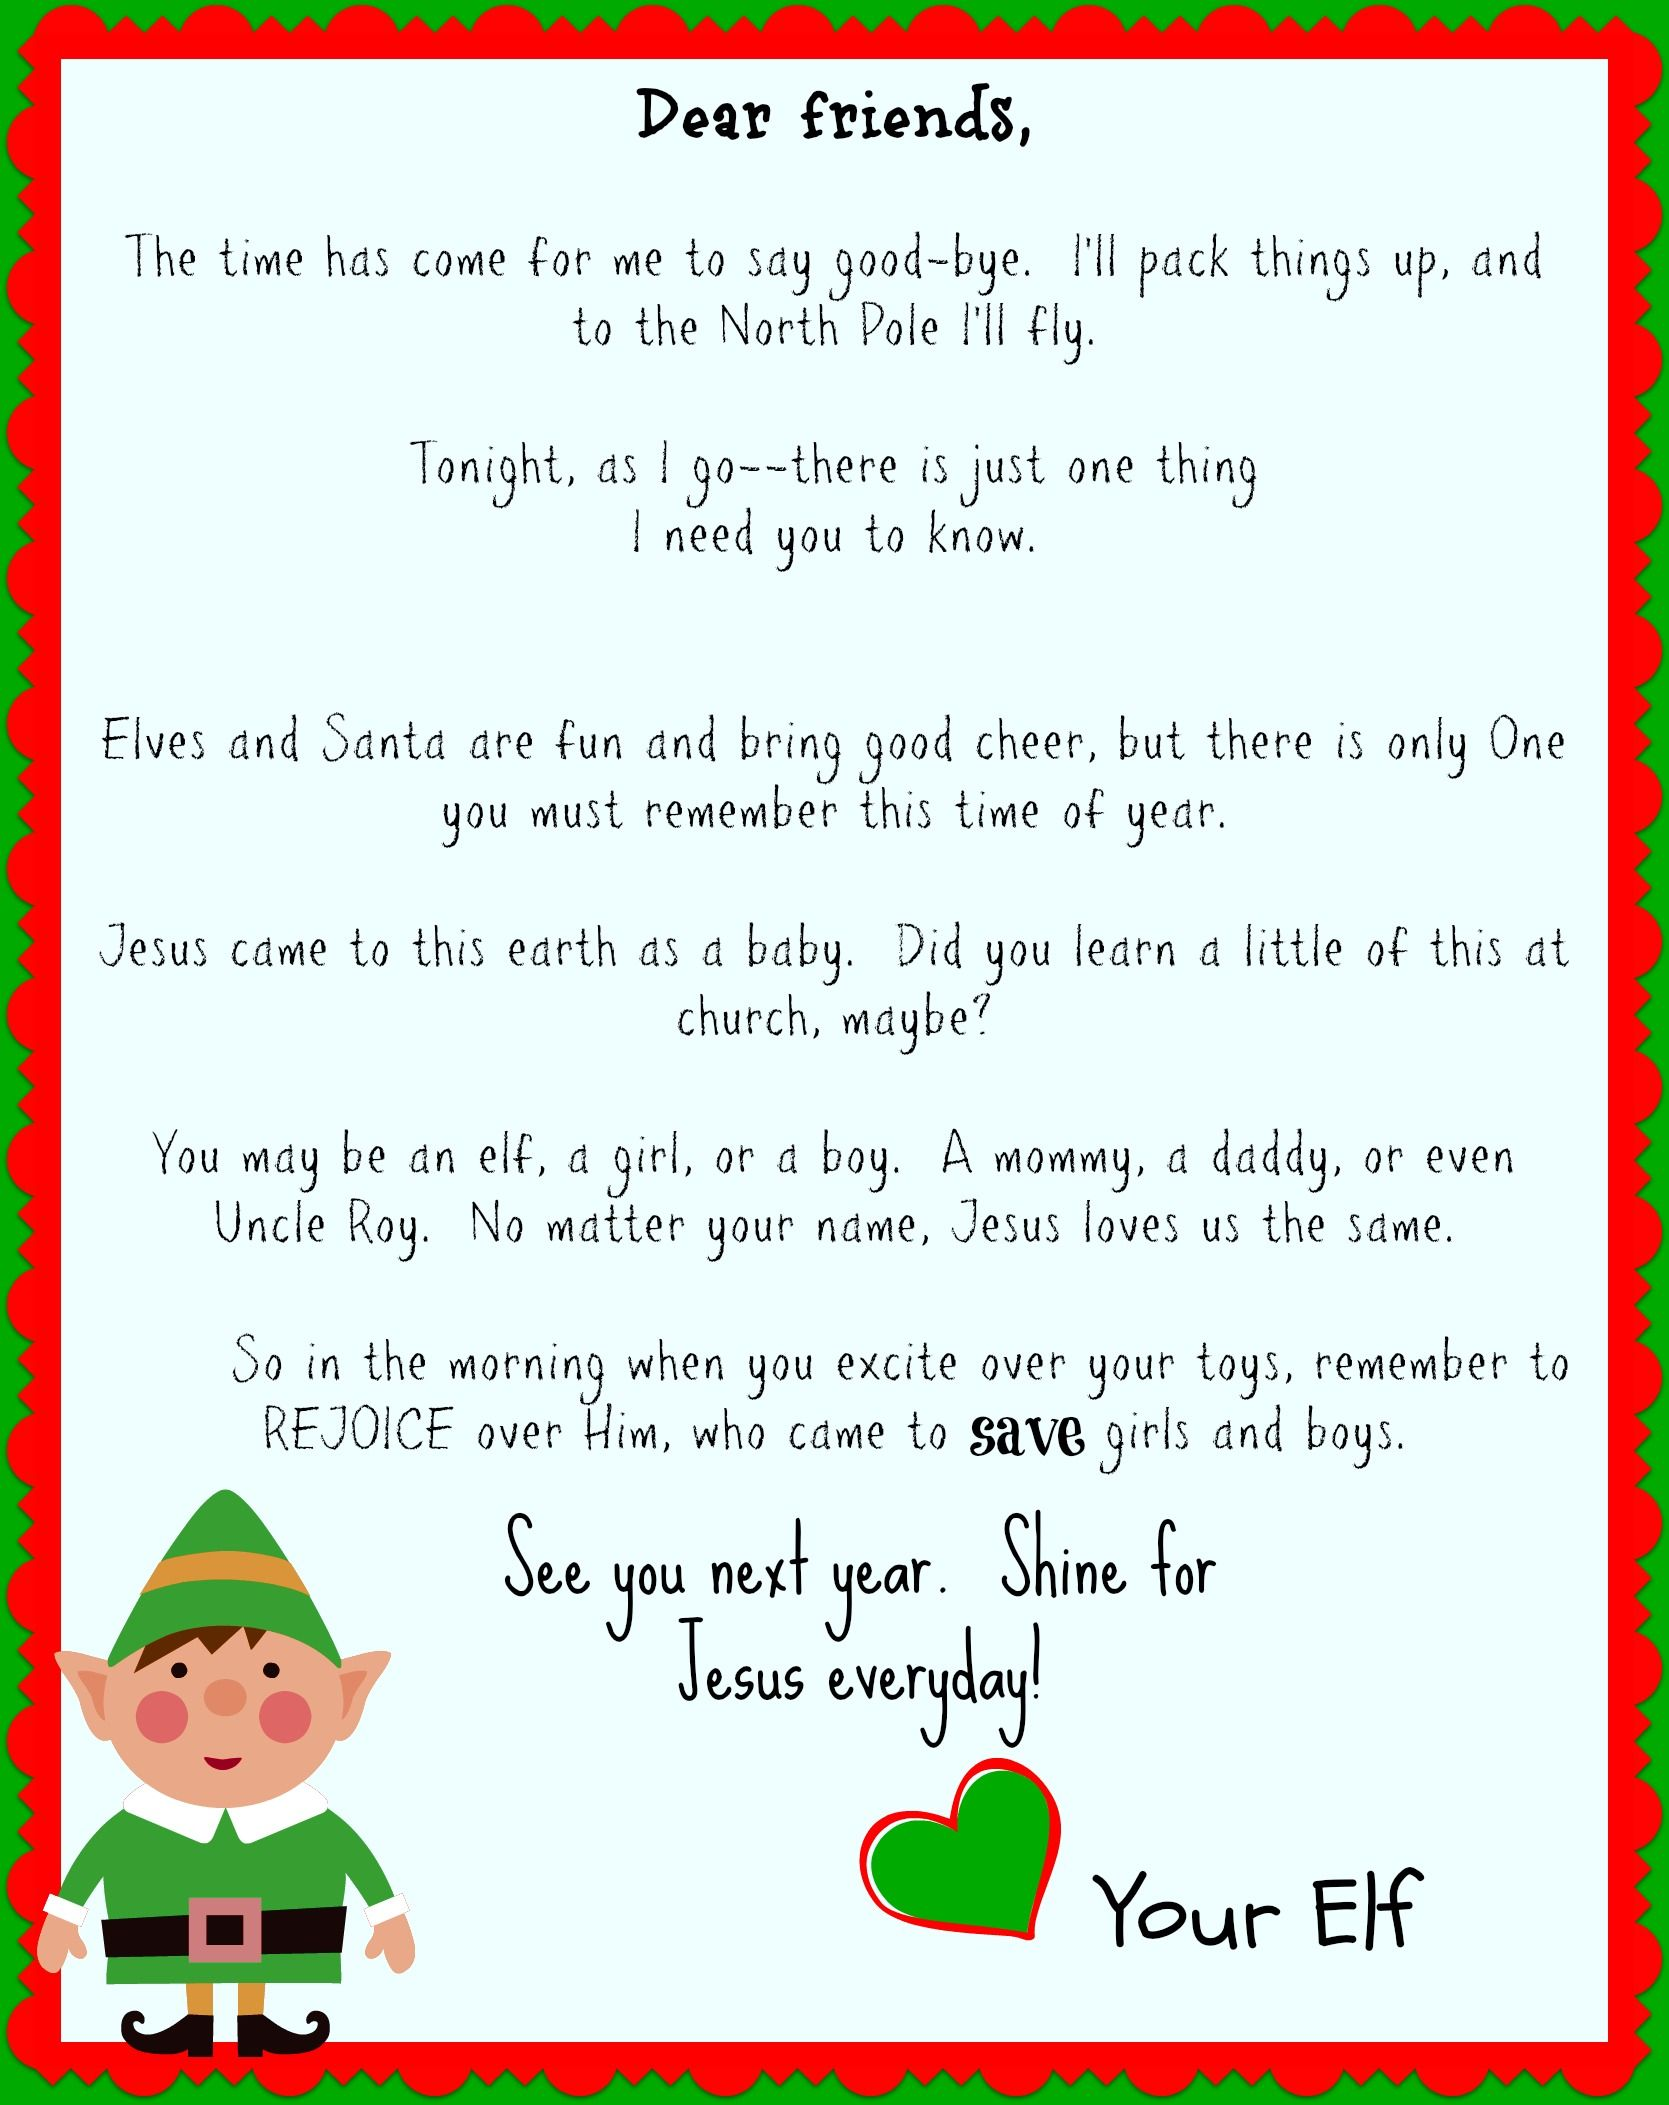 Elf on the Shelf good bye letter focusing on Jesus. It